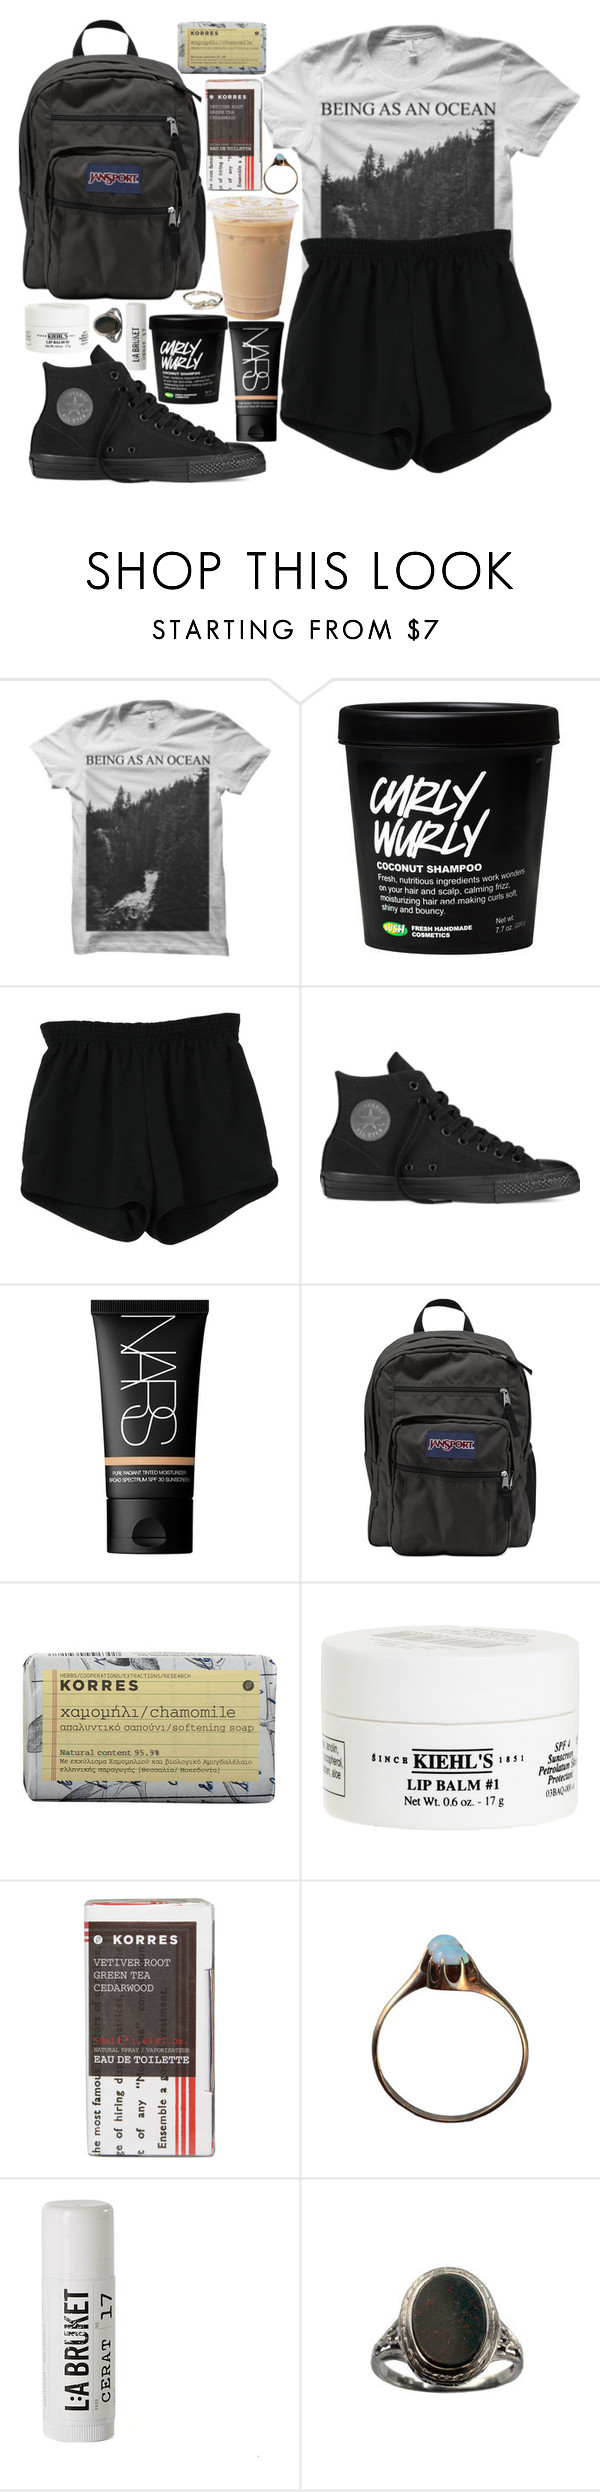 """""""Simplon"""" by velvet-ears ❤ liked on Polyvore featuring Retrò, Converse, NARS Cosmetics, JanSport, Korres, Kiehl's and L:A Bruket"""